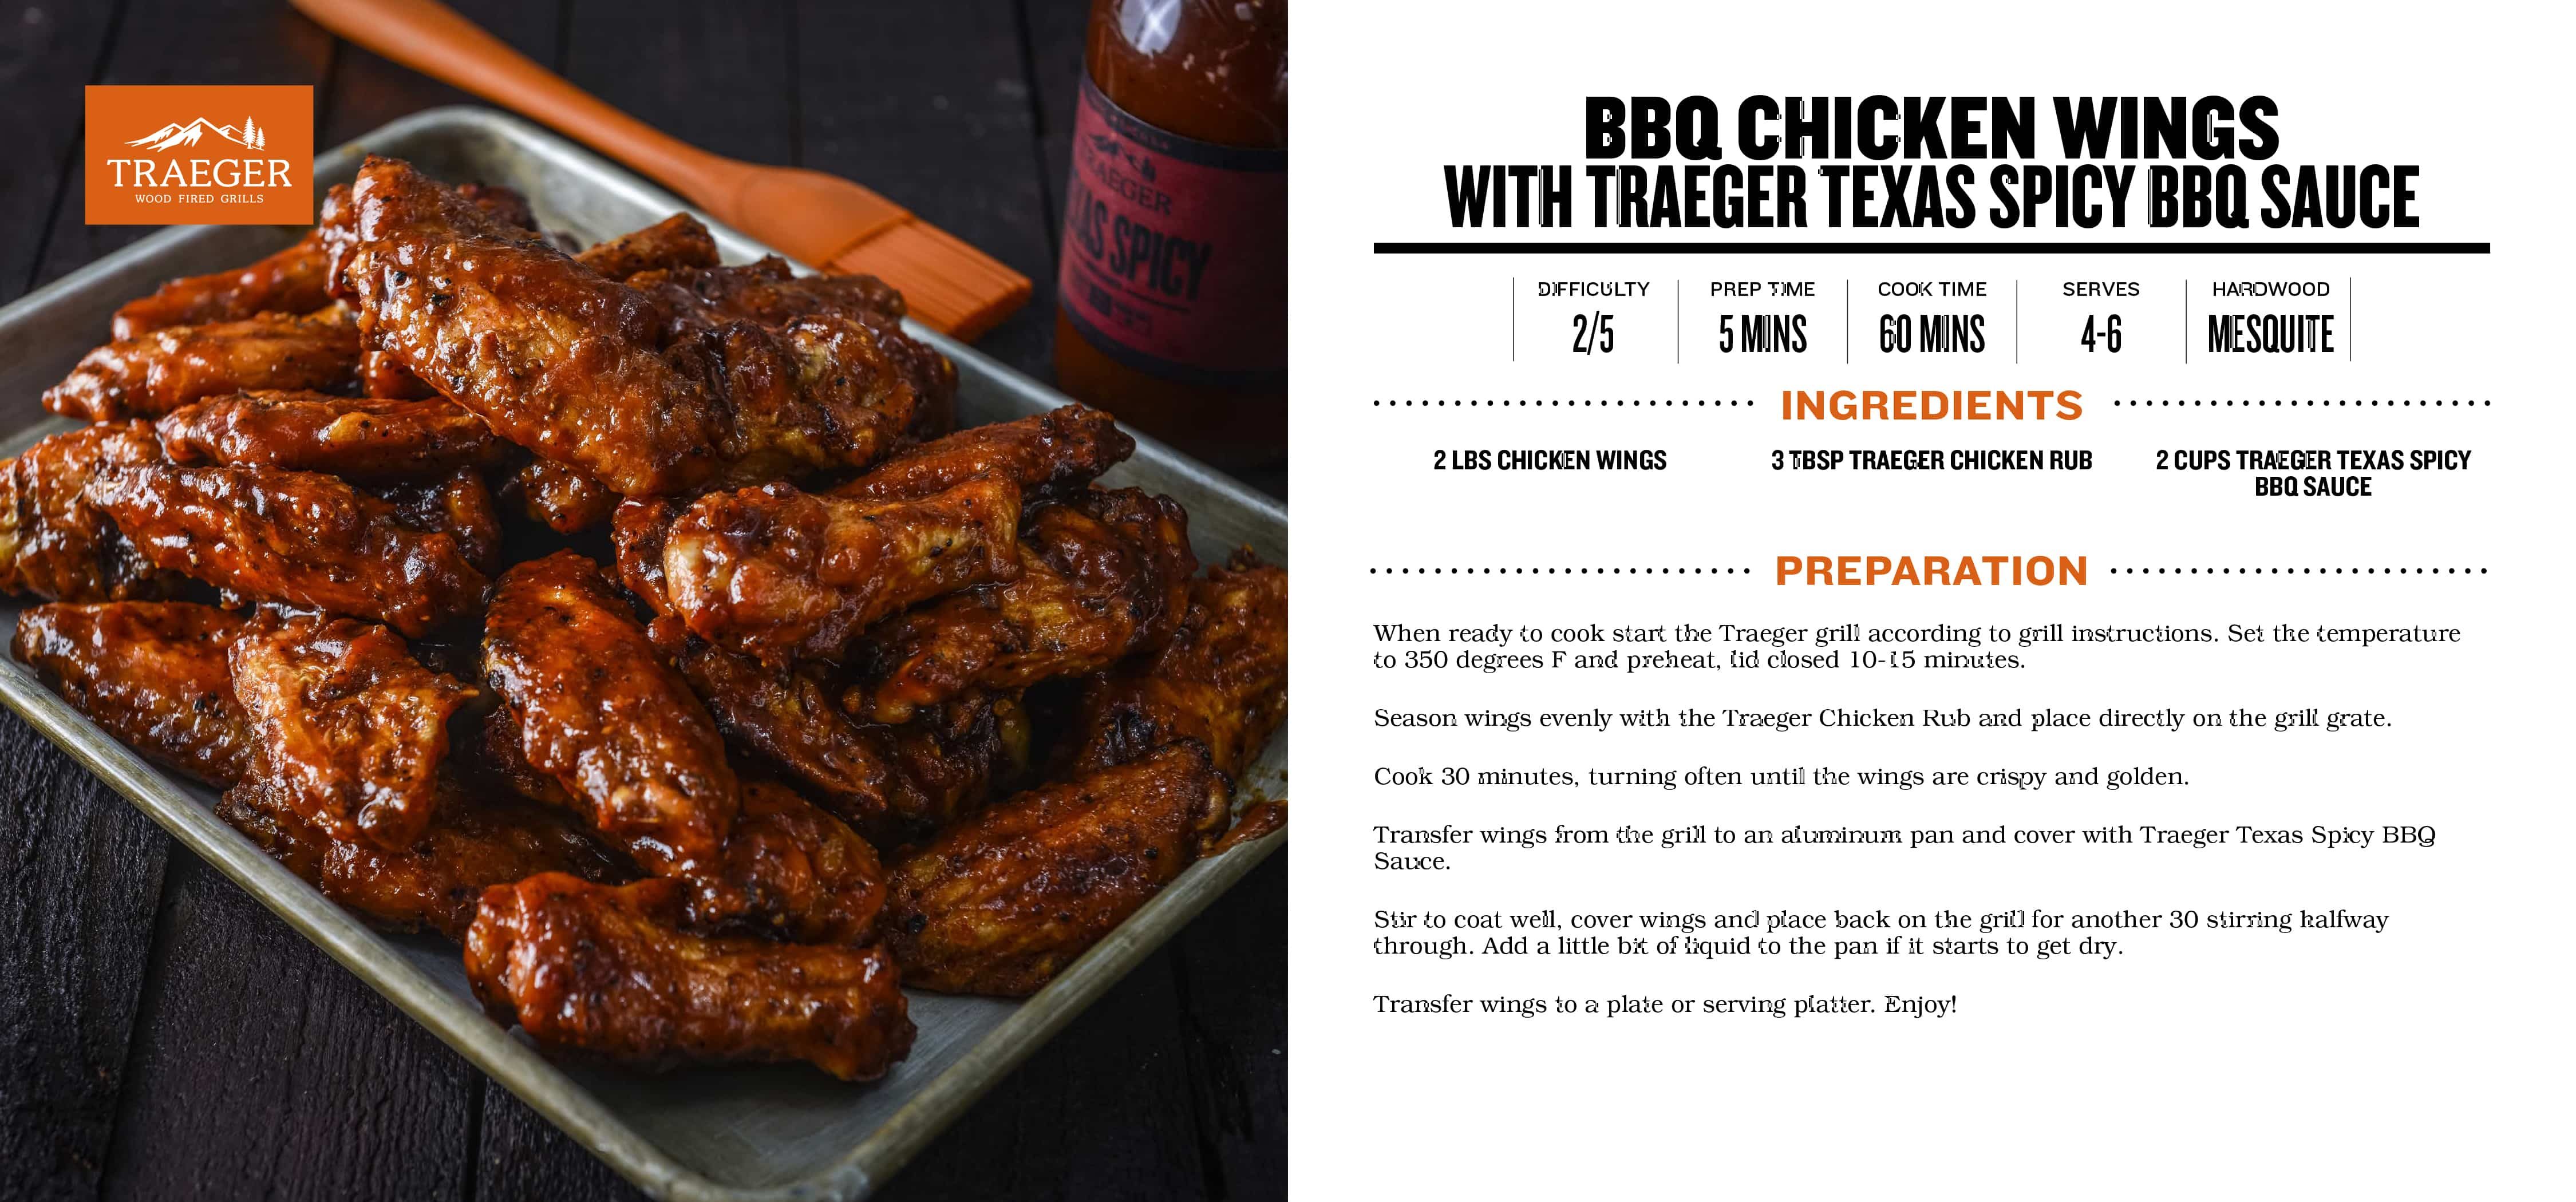 Kool Bbq Bbq Chicken Wings With Traeger Texas Spicy Bbq Sauce